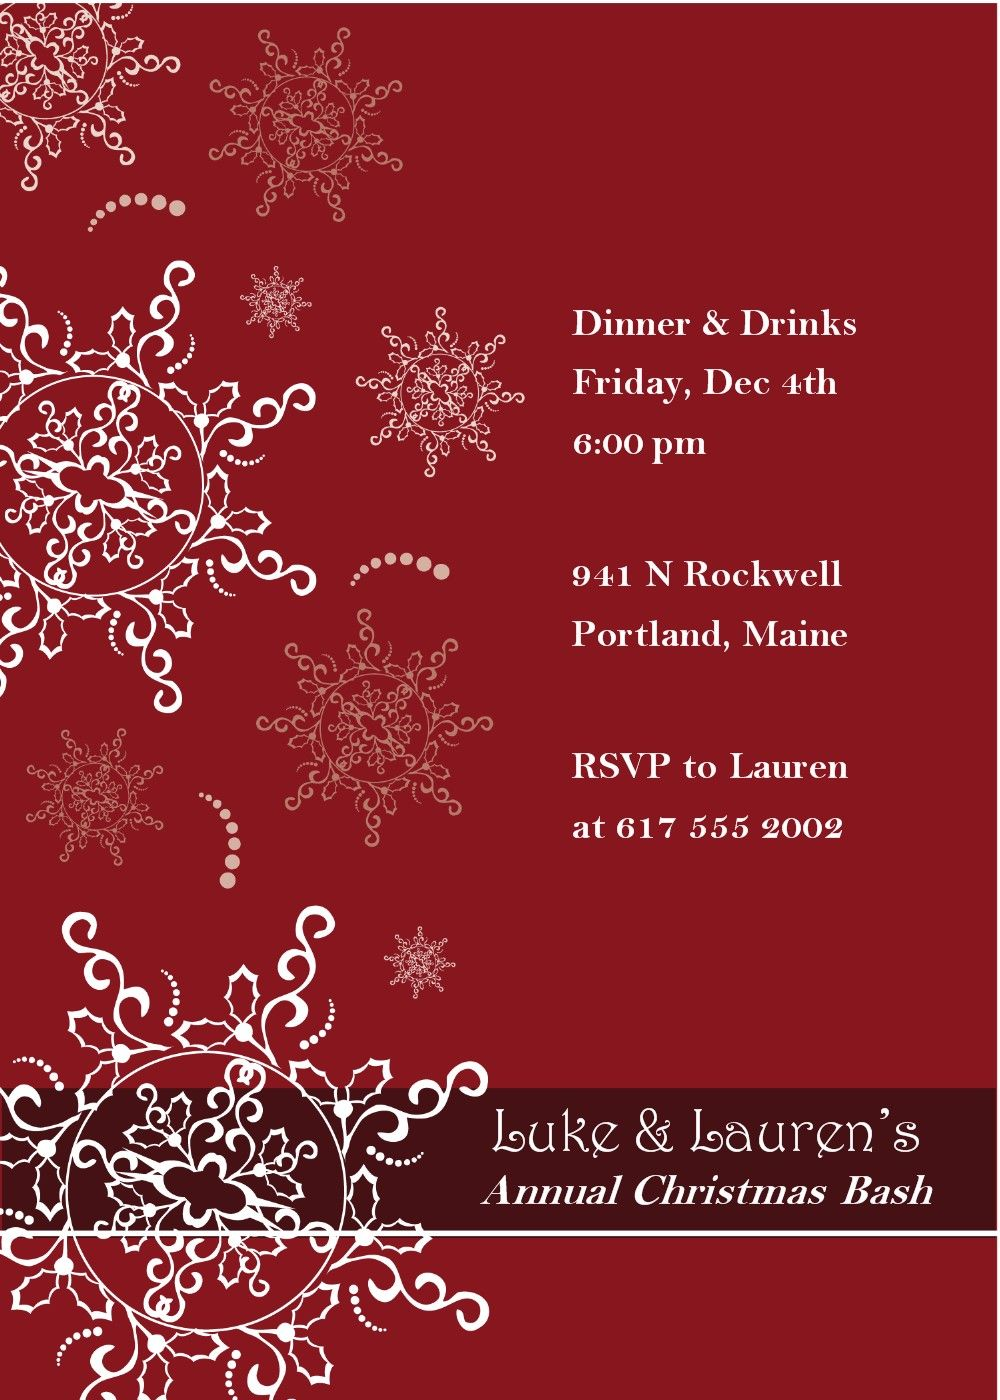 christmas party printable invitation templates invitation an invitation to depict the holiday spirit and invite the employees for a fun filled evening templates ceba orgtemplates